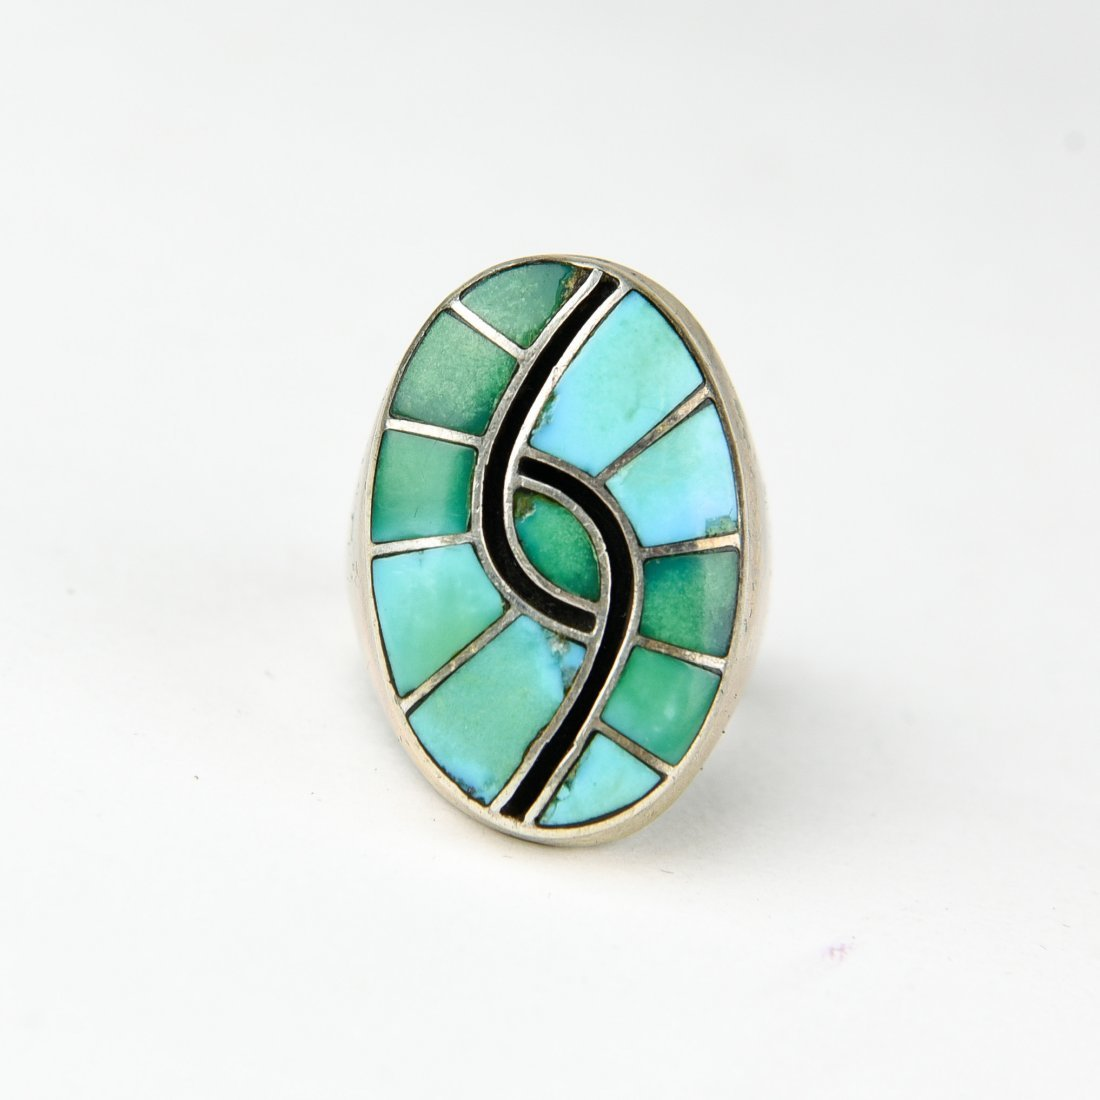 HEAVY INLAID STERLING AND TURQUOISE RING